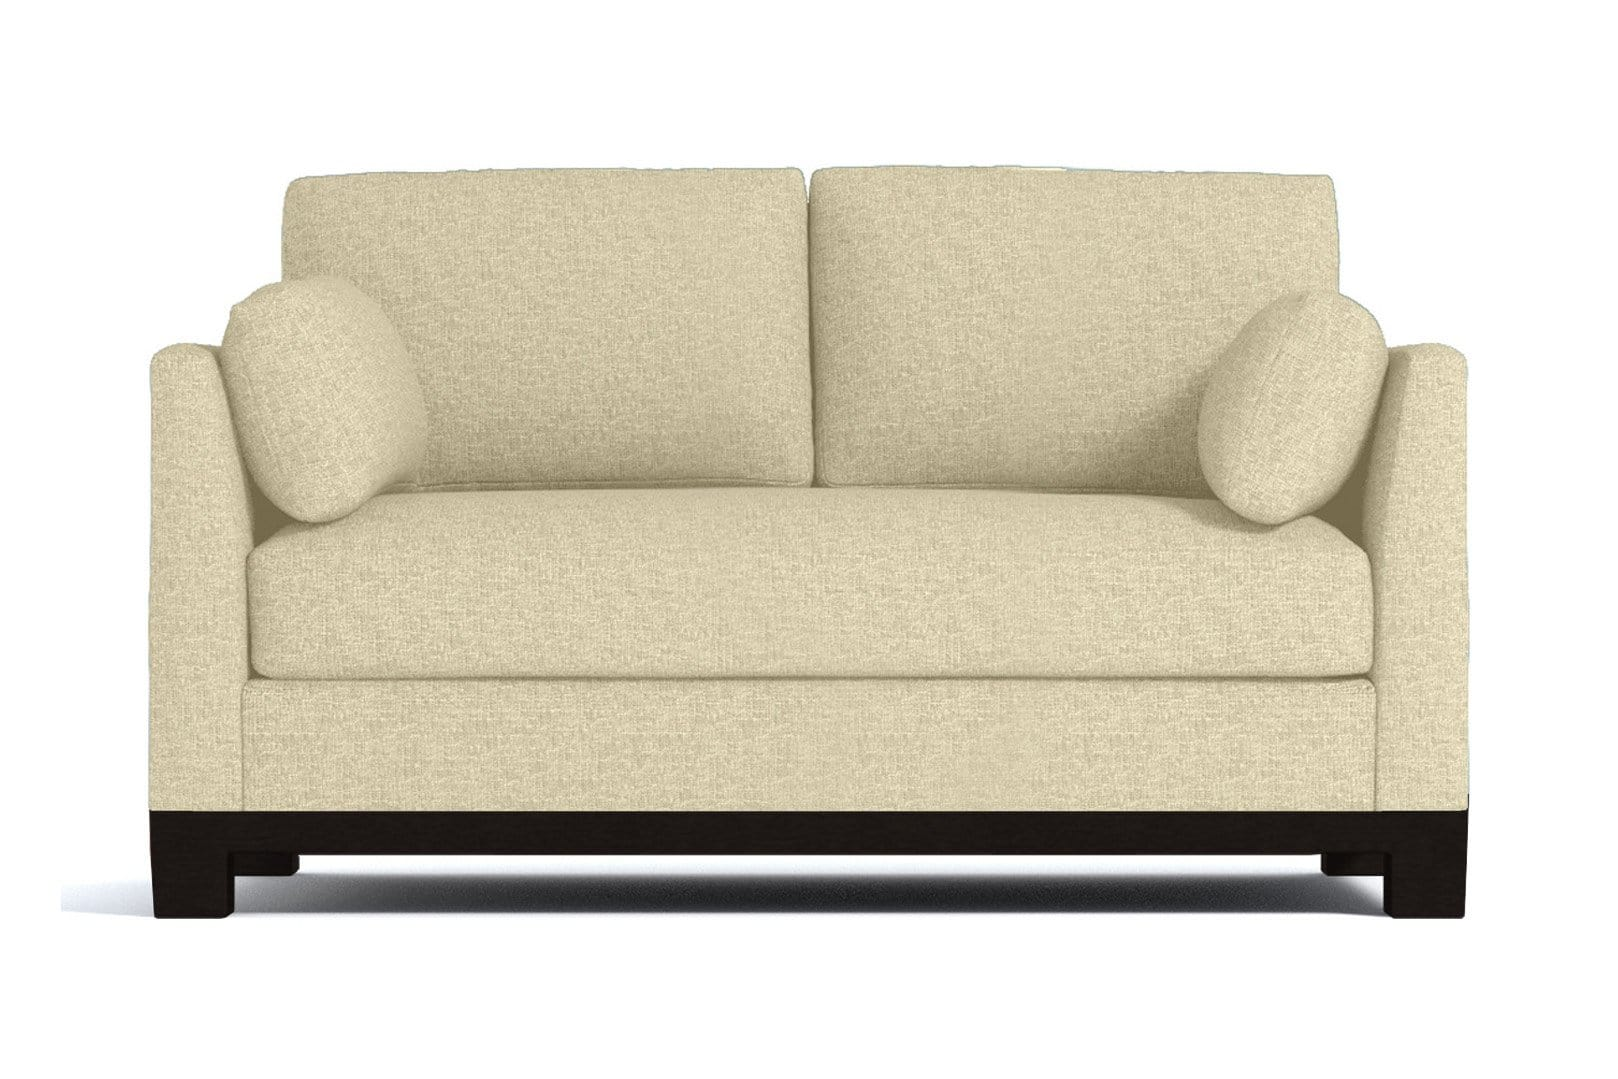 Avalon Apartment Size Sleeper Sofa - Beige - Pull Out Couch Bed Made in the USA - Sold by Apt2B